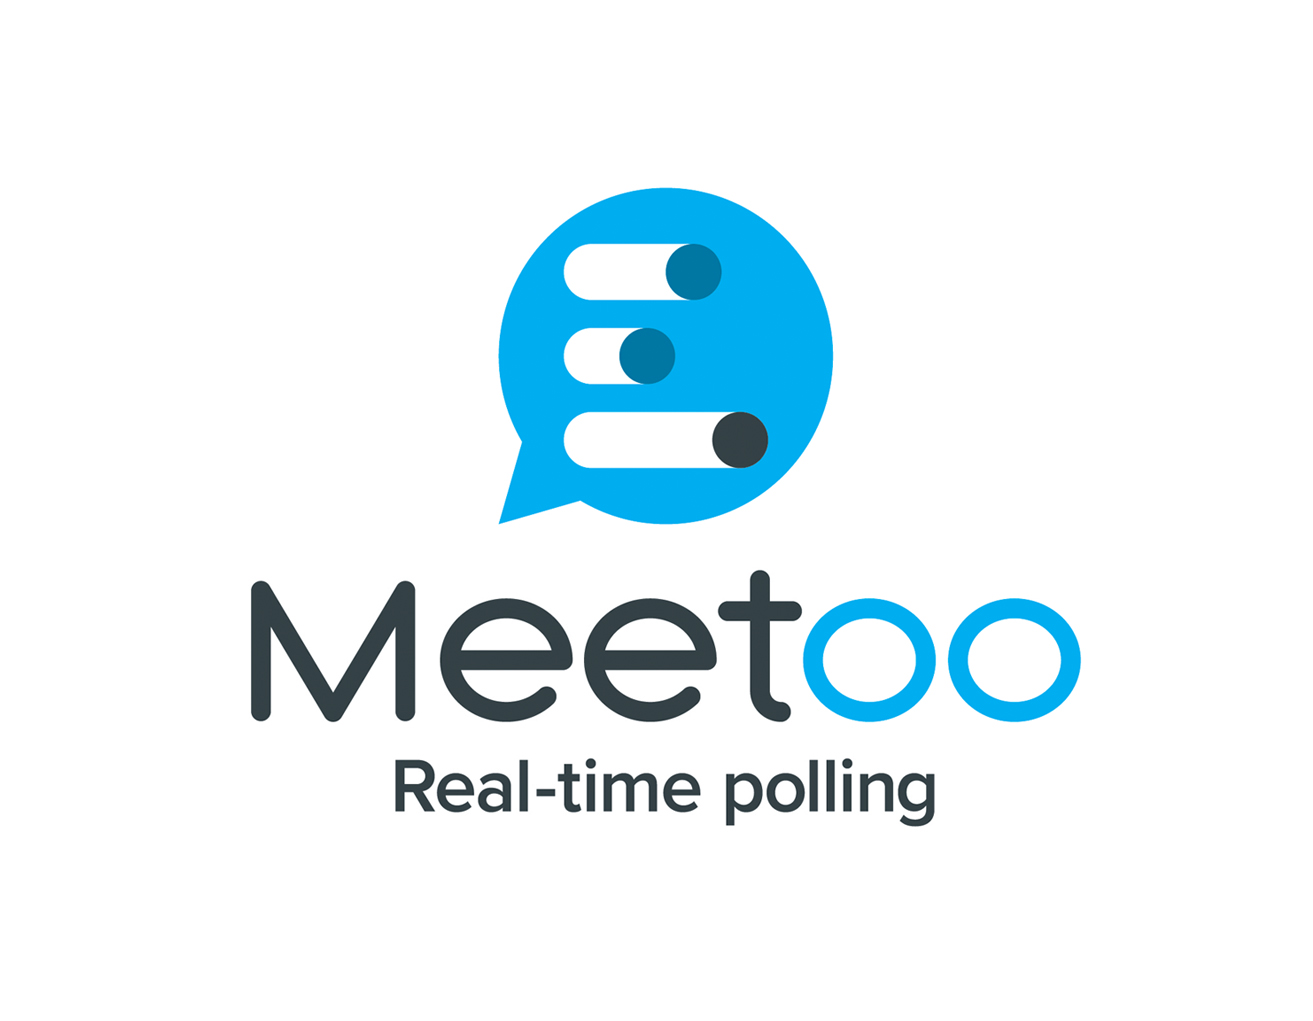 Meetoo - A Brief History